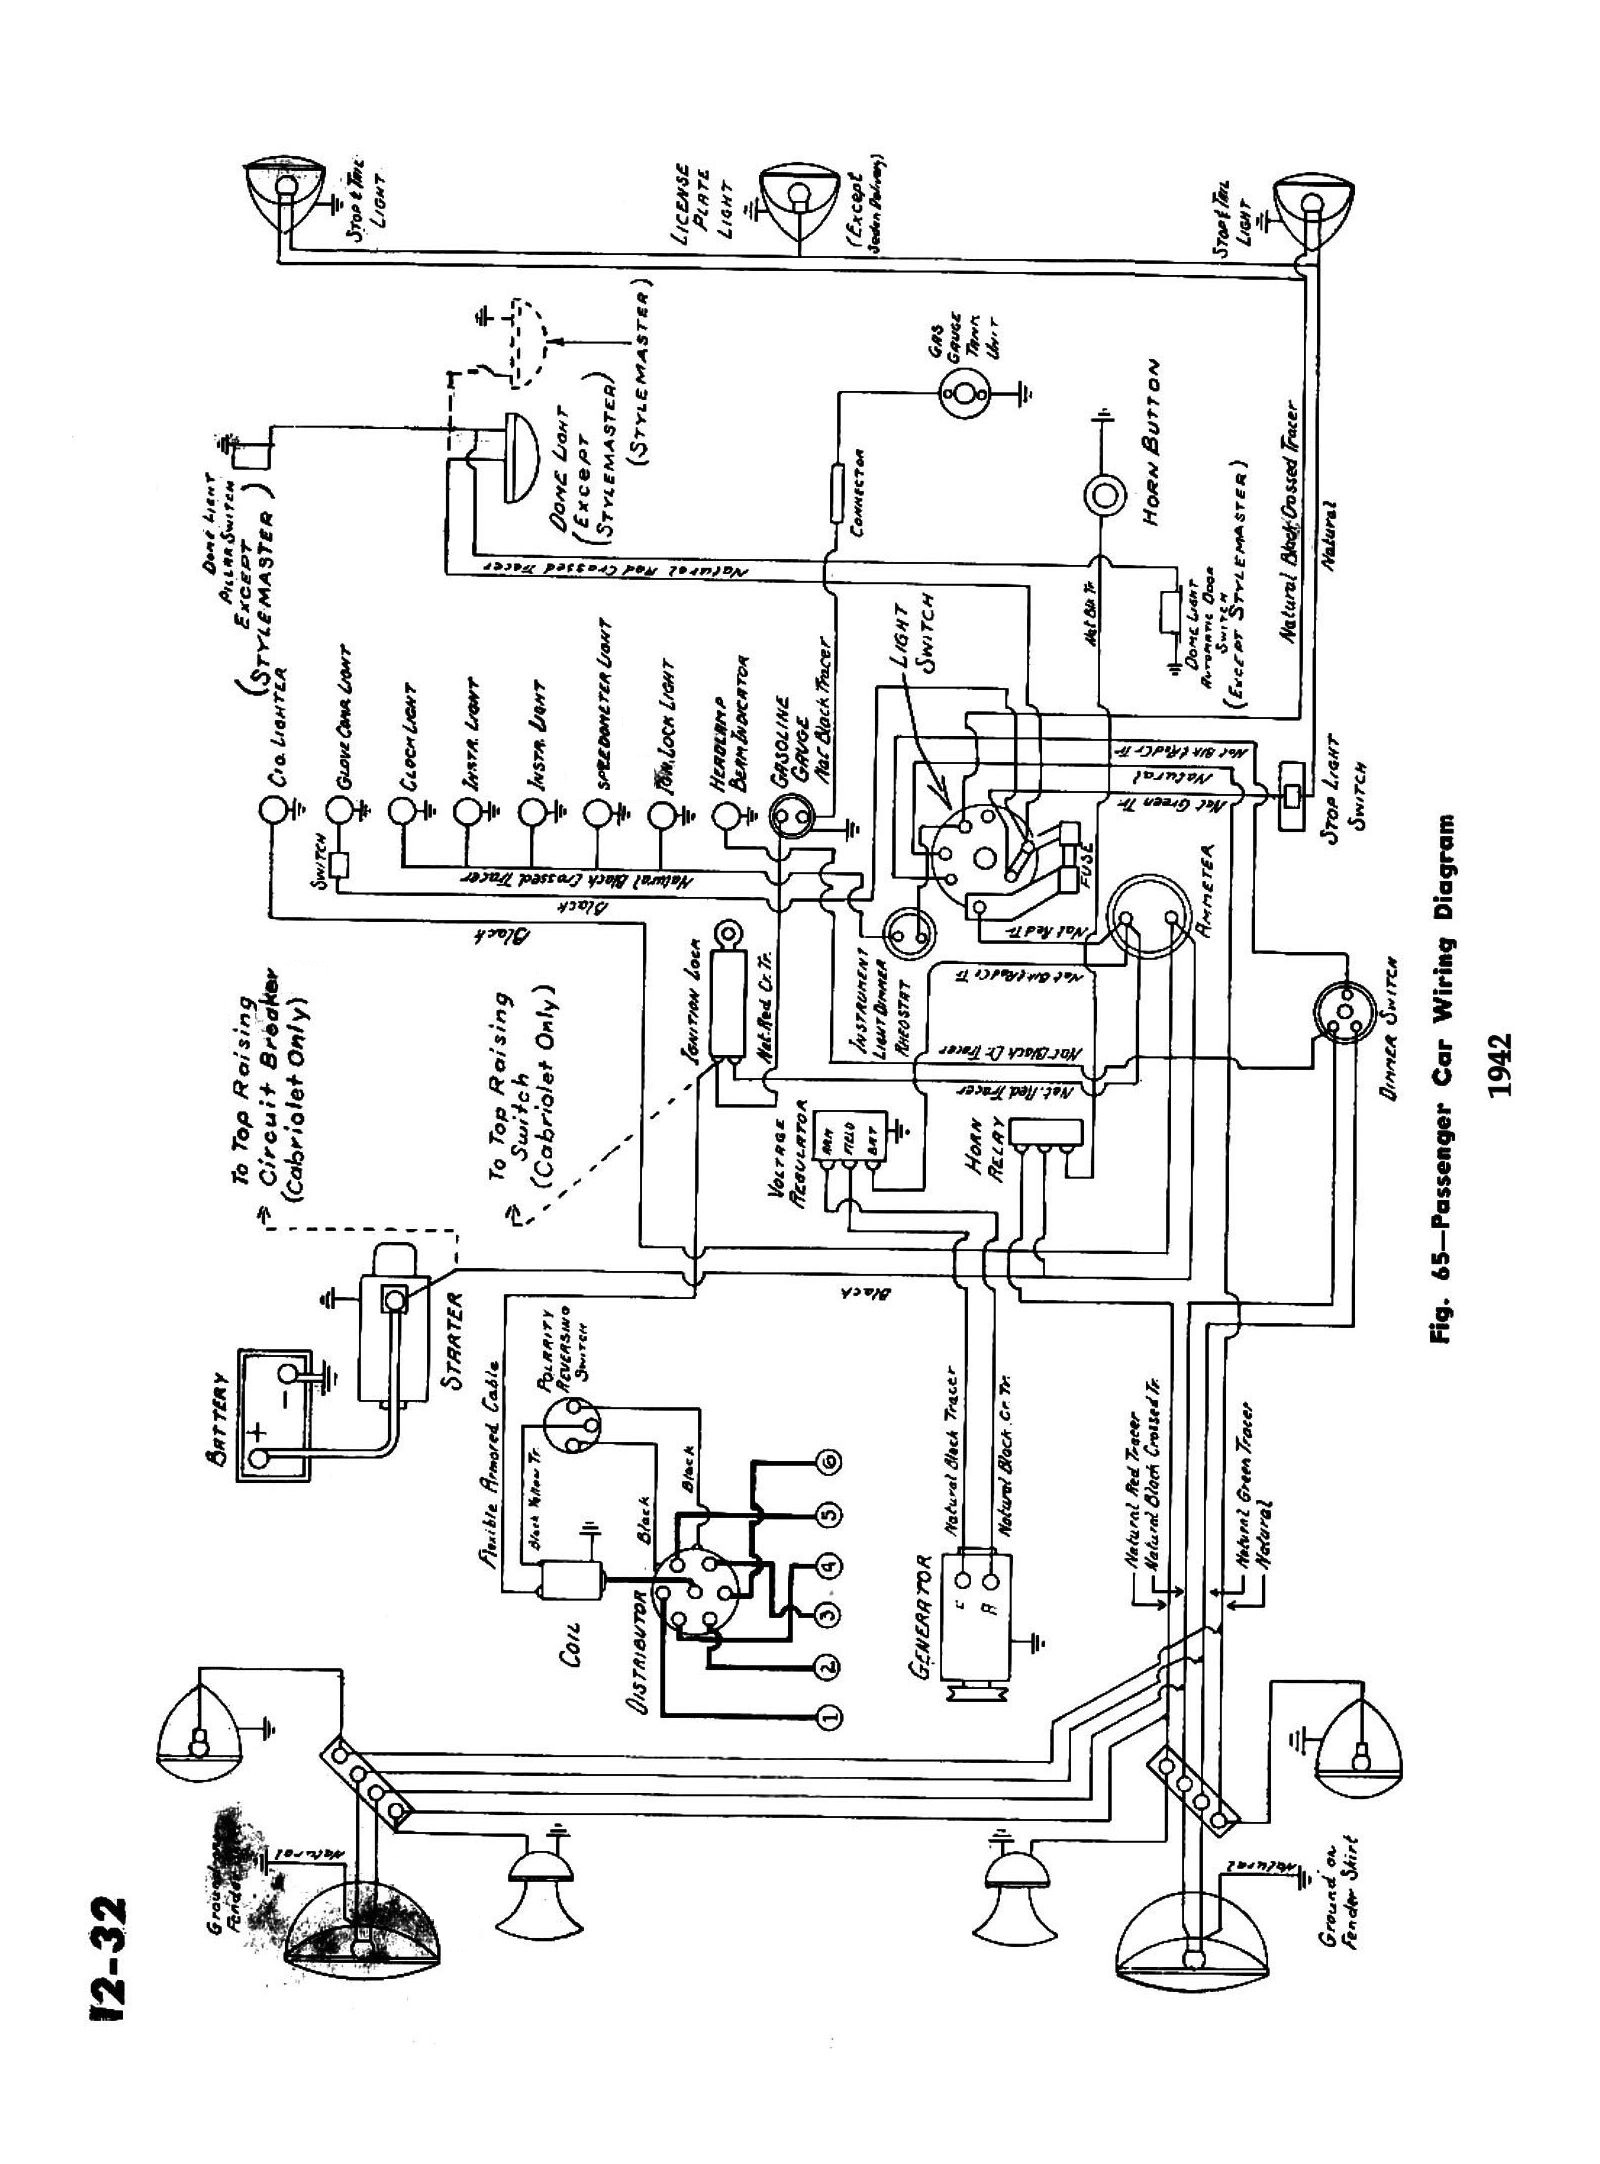 1940 Dodge Truck Wiring Diagram Online Schematics 1979 Gmc 1939 Chevy 1994 Pick Up